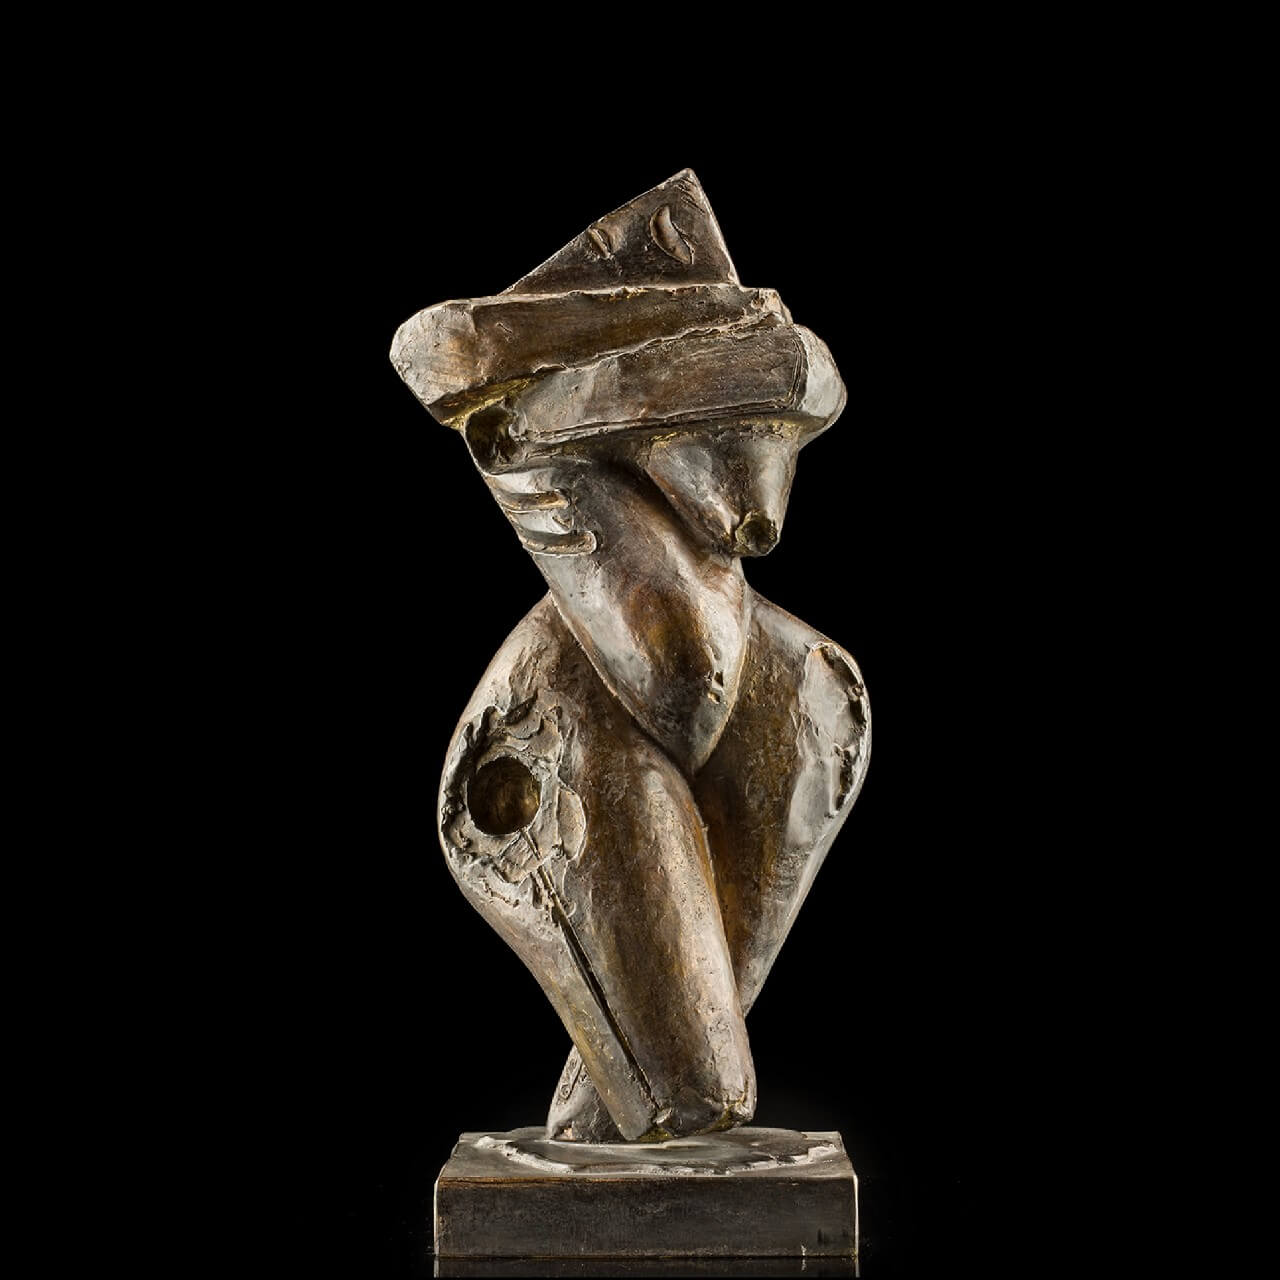 mario pavesi italian sculptur painter bronze maternity female figure